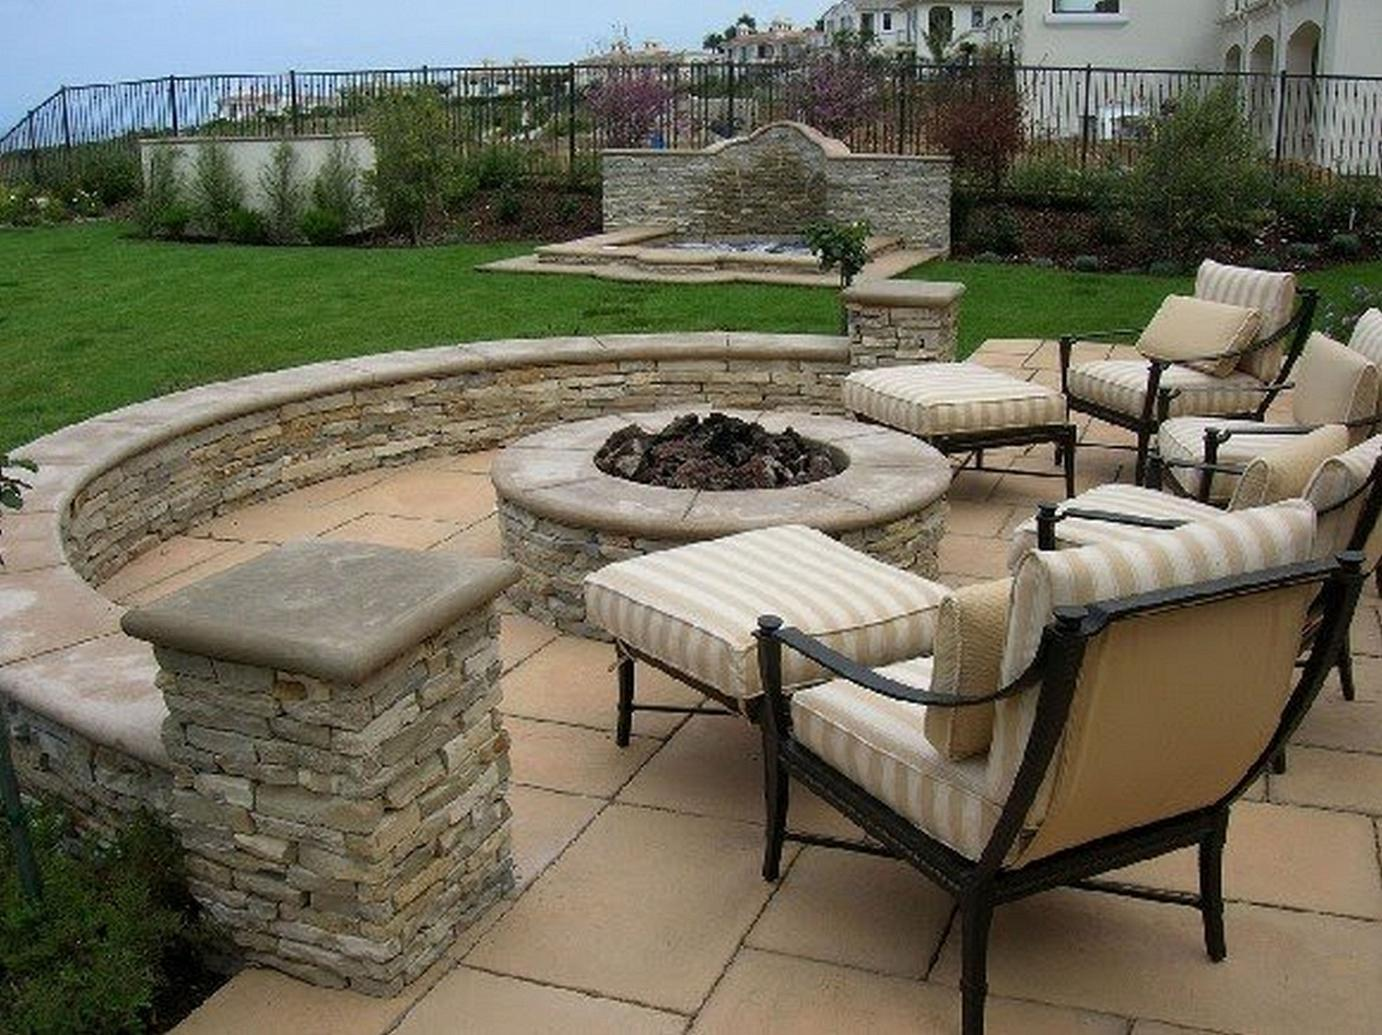 Backyard patio ideas for small spaces large and for Outdoor garden ideas for small spaces